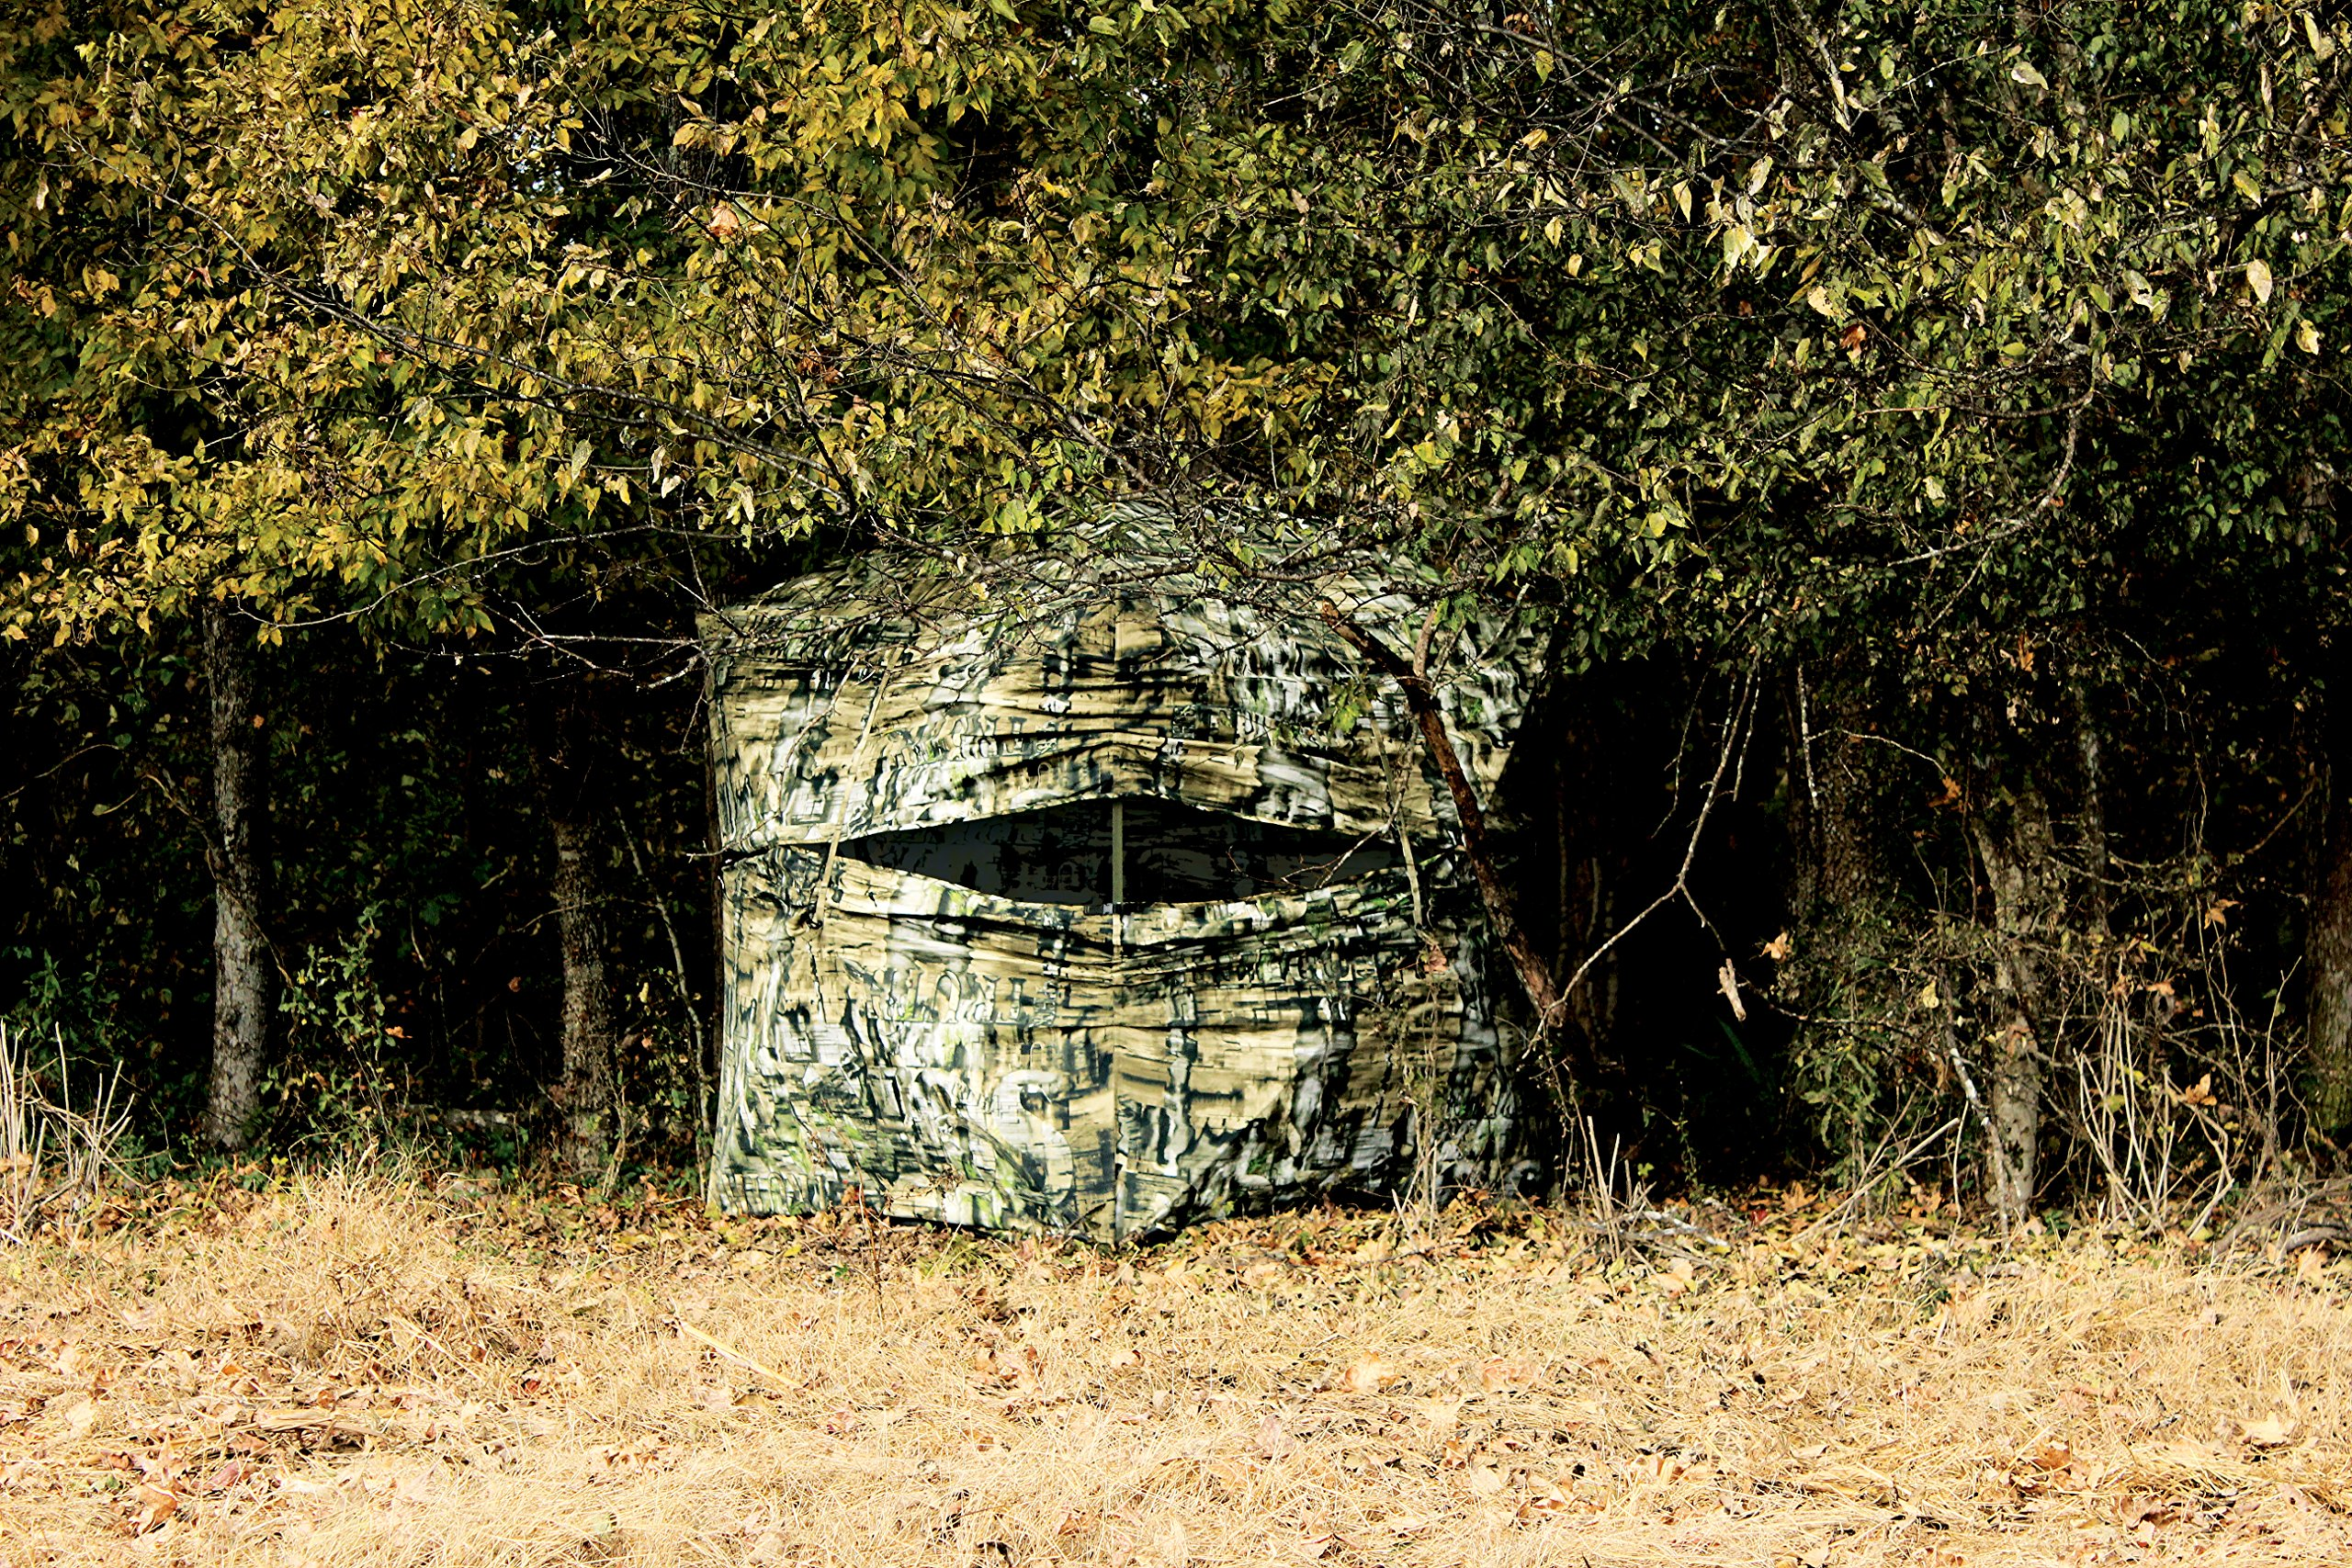 blinds for in blind best bowhunting deer turkey ground min